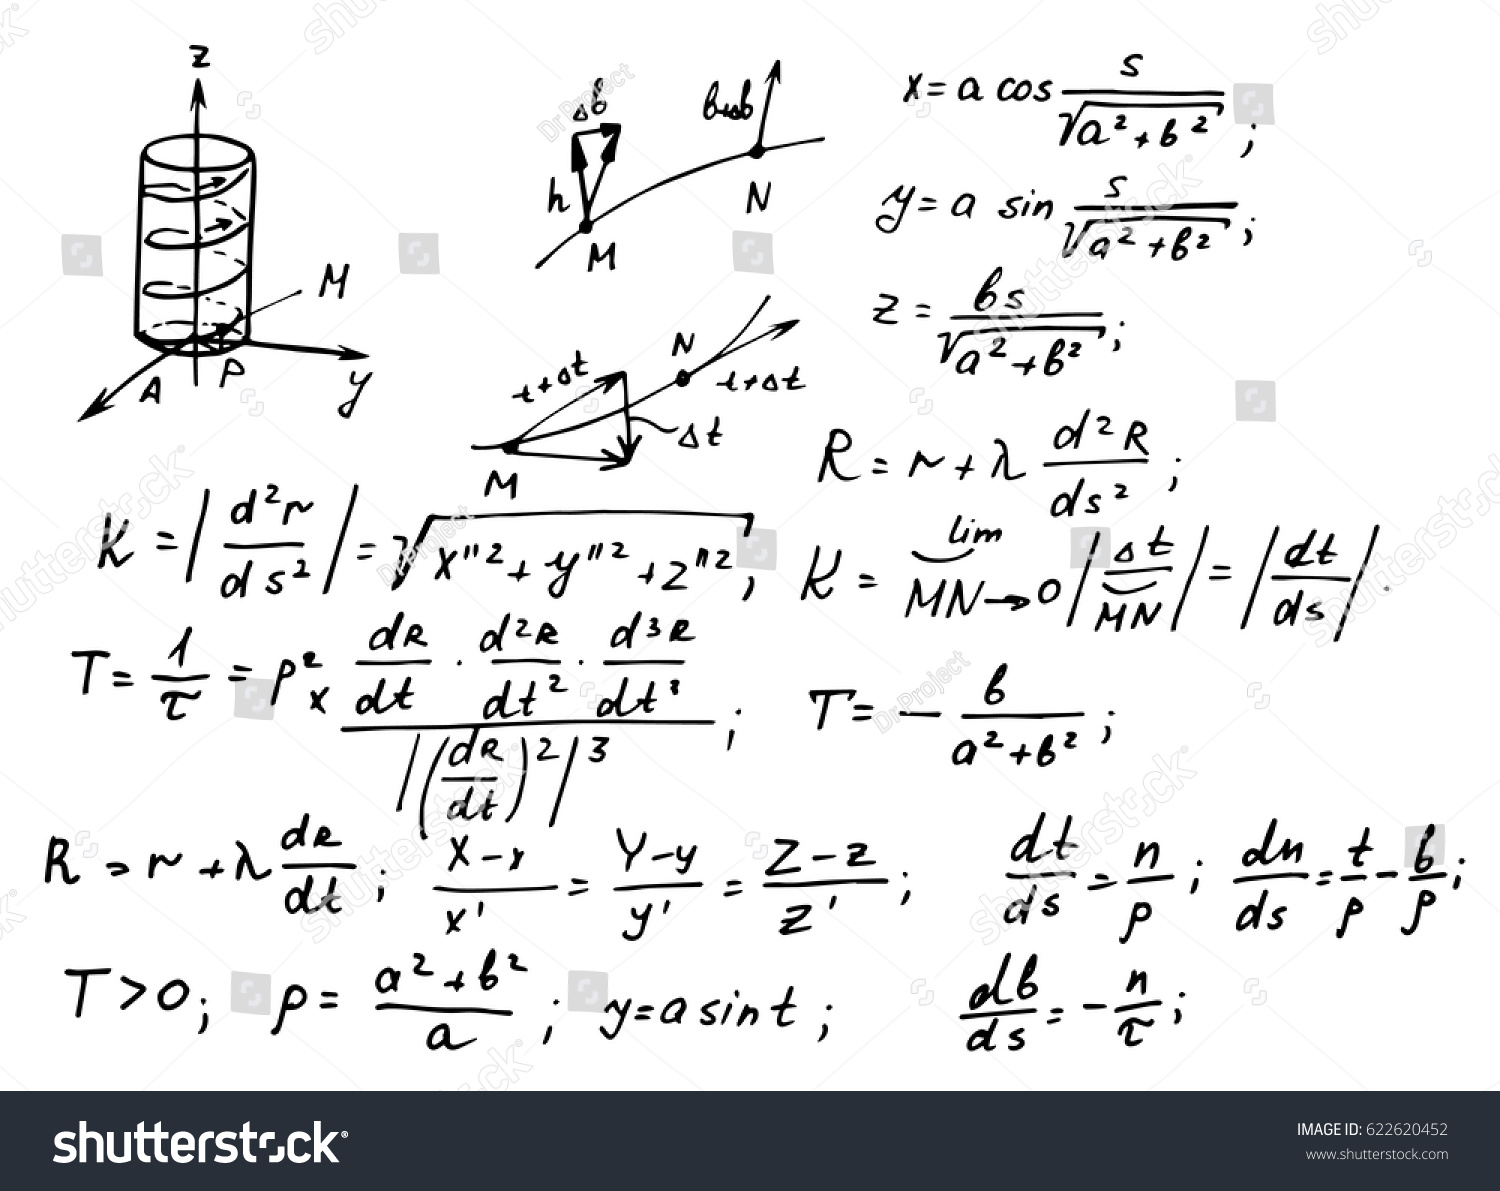 Circuit Diagram And Equations Ez Canvas Notation On Electronic Symbols Stock Vector